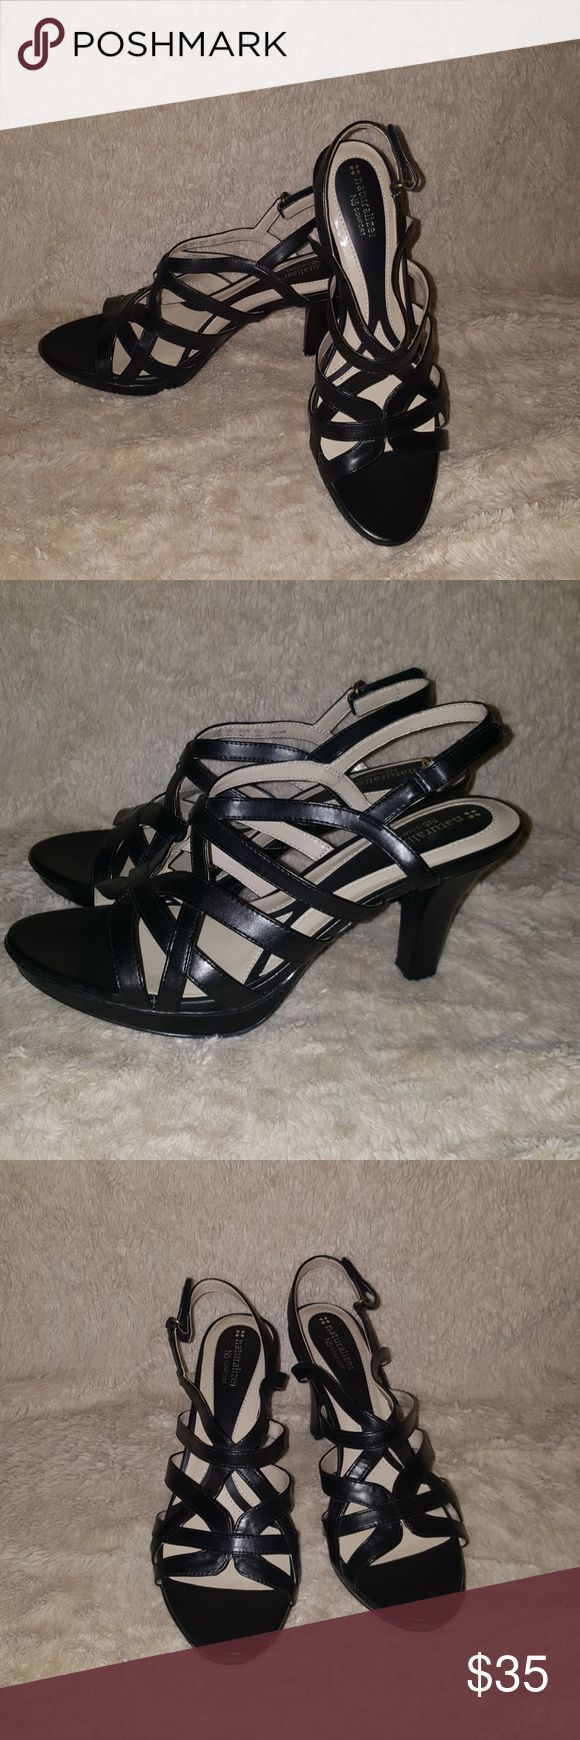 """NEW Womens Naturalizer Black Heels Sandals size 11 Naturalizer N5 comfort- black strappy heels size 11. Shoes are brand new without box. Approximate 3.25"""" heel. Smoke and pet free home. Will ship within two business days. Naturalizer Shoes Heels"""